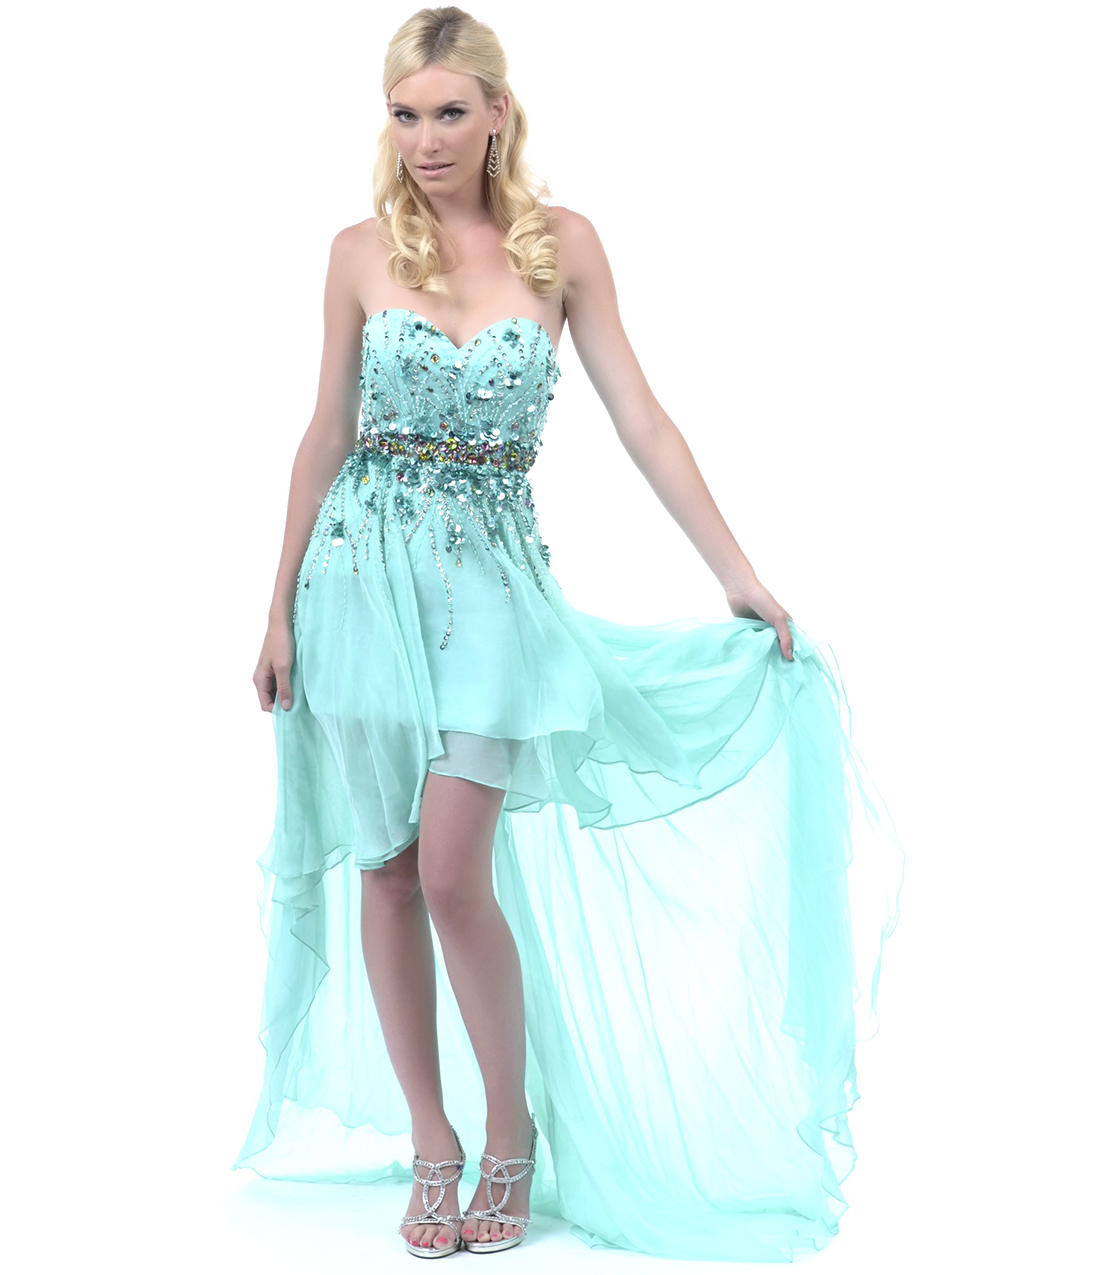 Teal High Low Dress   Dressed Up Girl